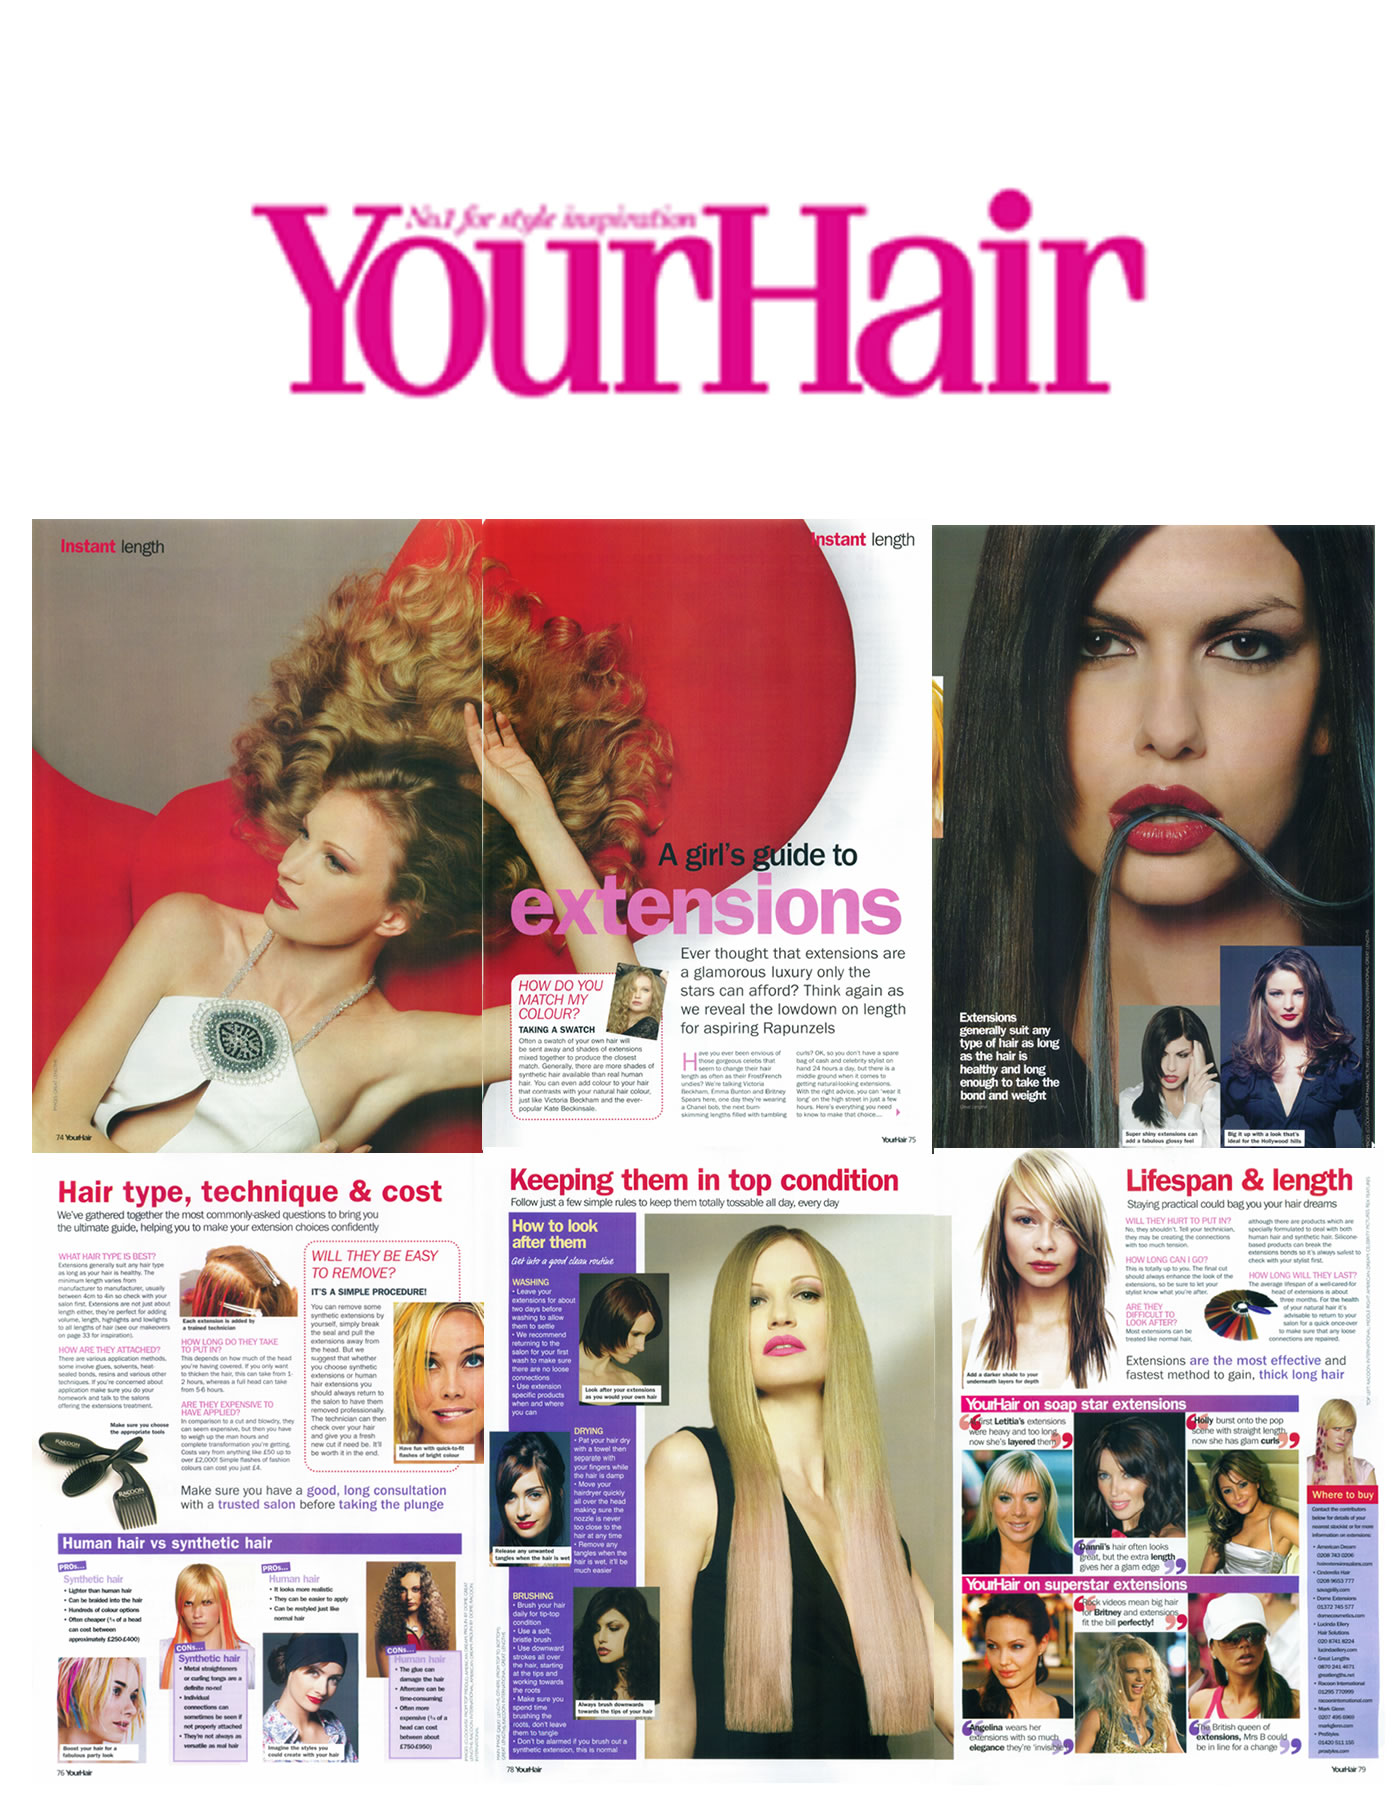 Your Hair recommends Mark Glenn in 'A Girl's Guide to Extensions'